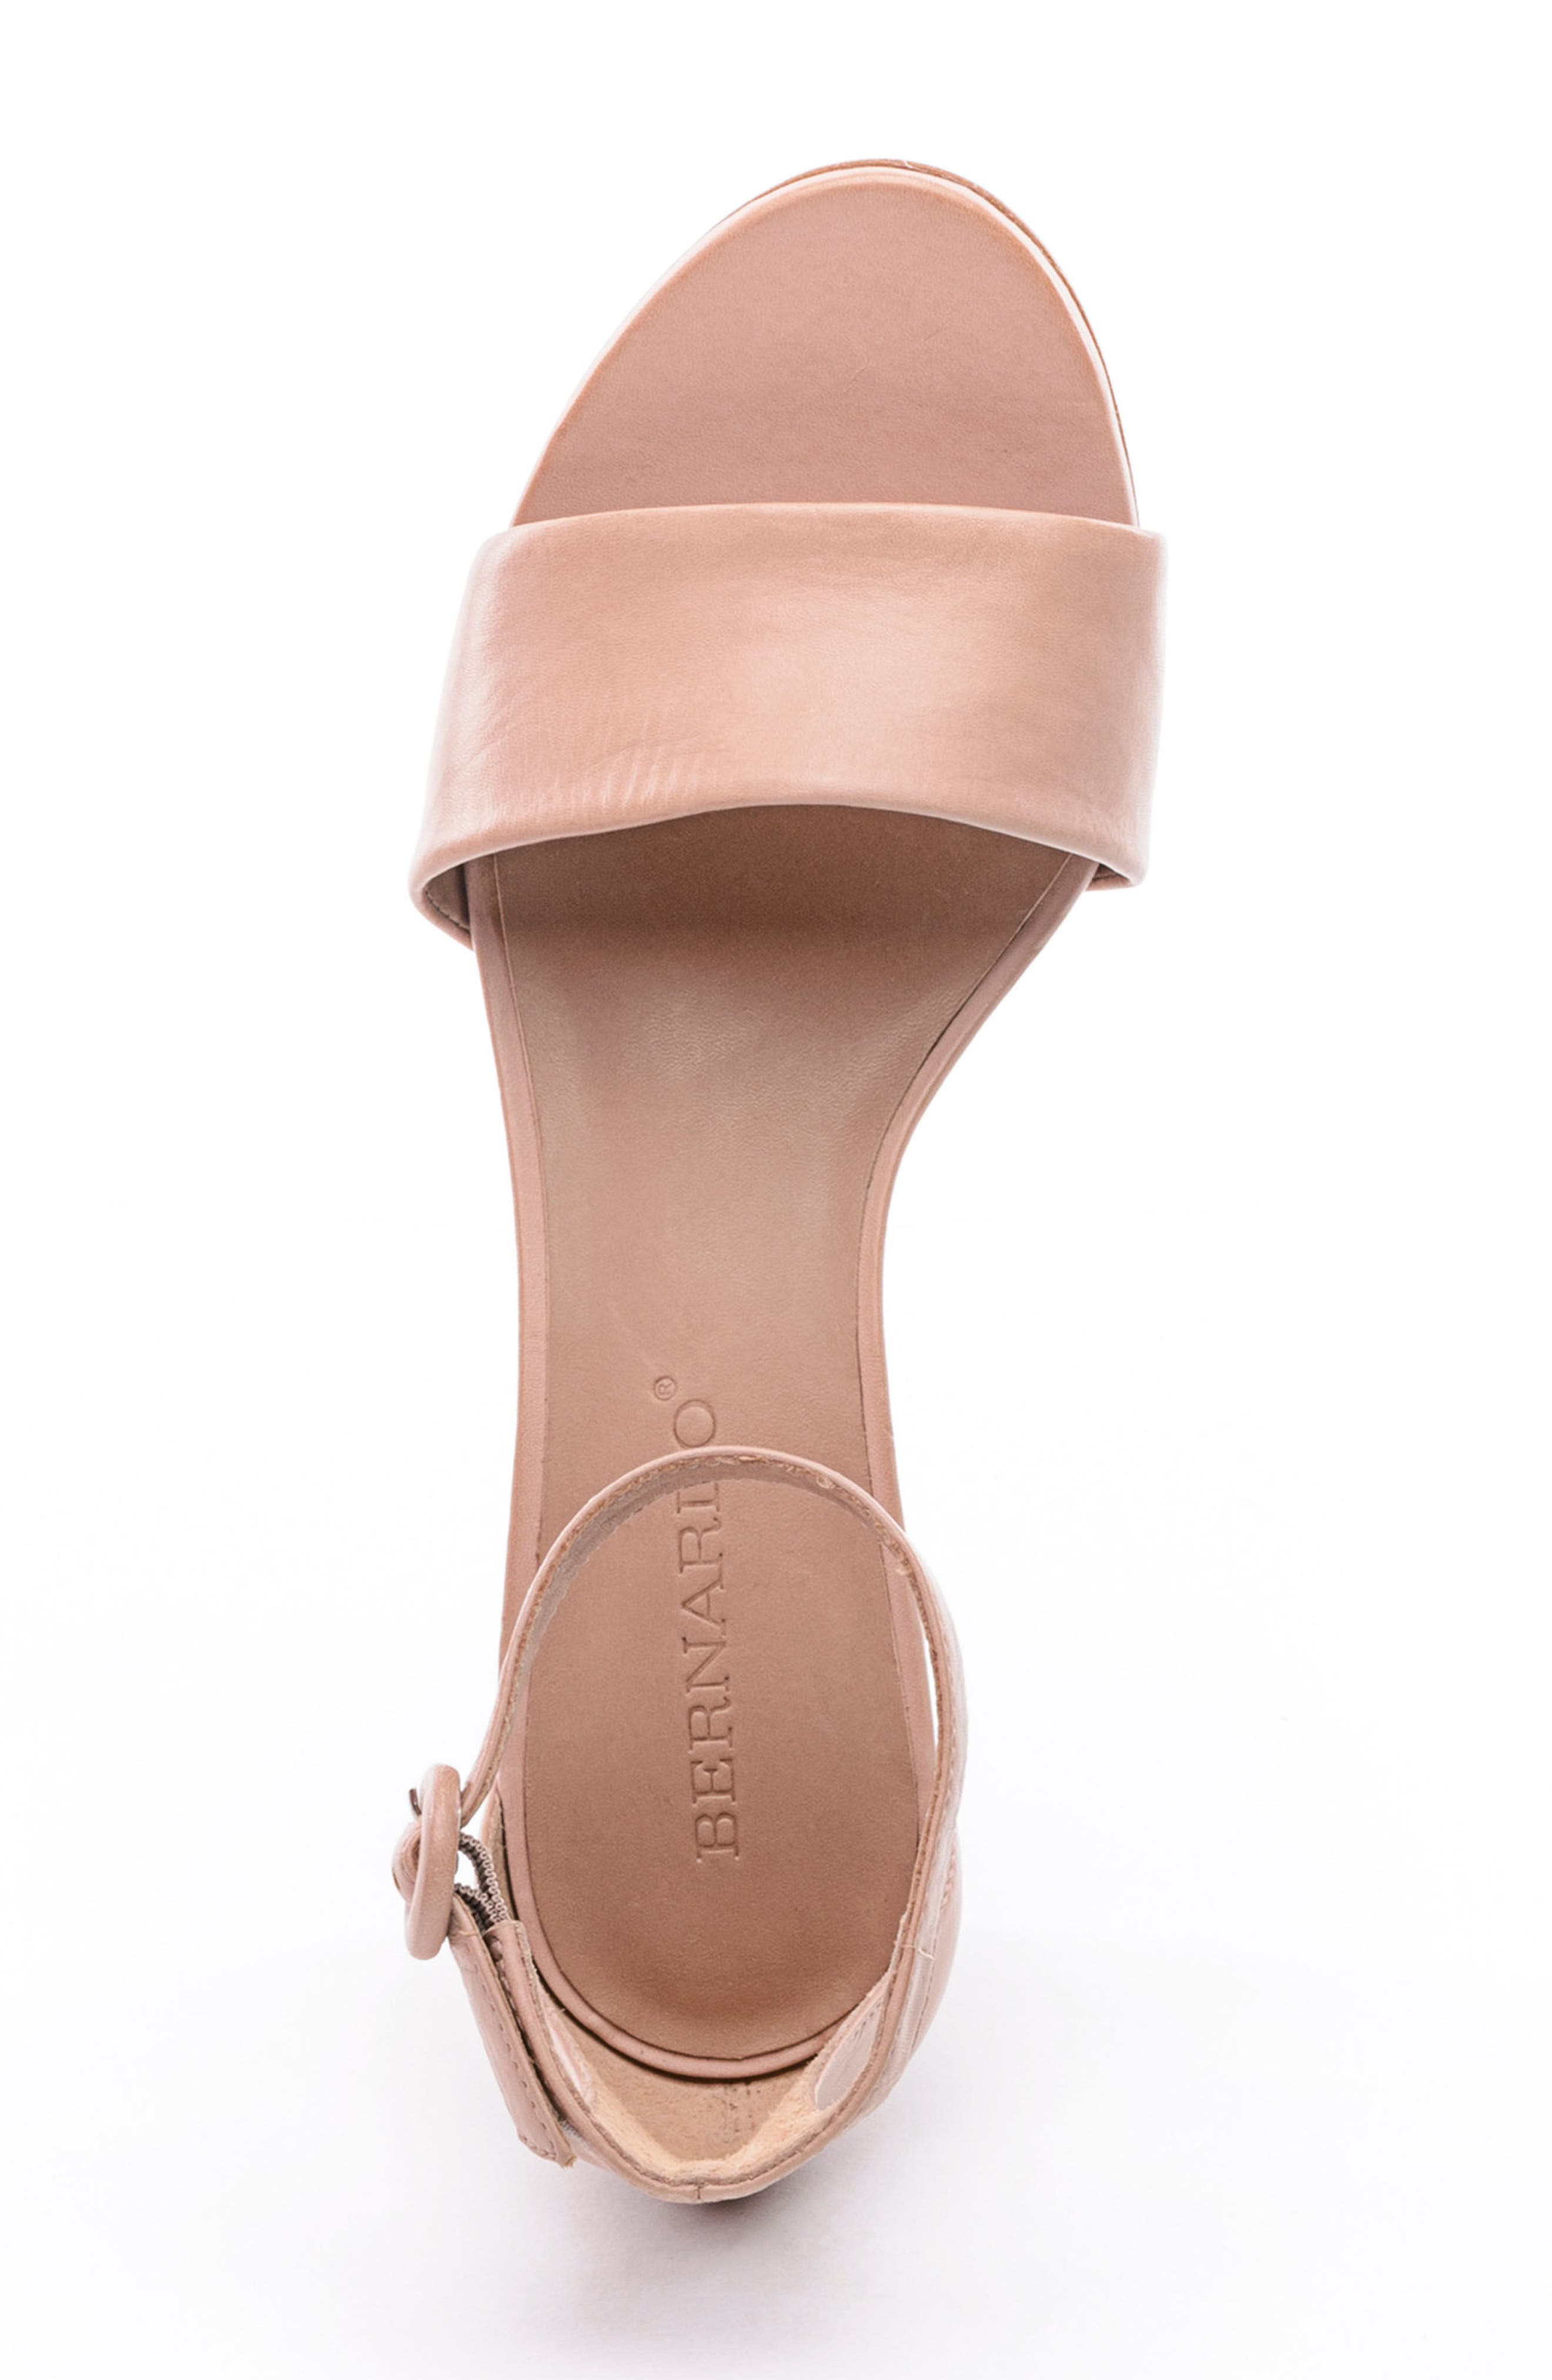 BERNARDO, Belinda Ankle Strap Sandal, Alternate thumbnail 5, color, BLUSH LEATHER